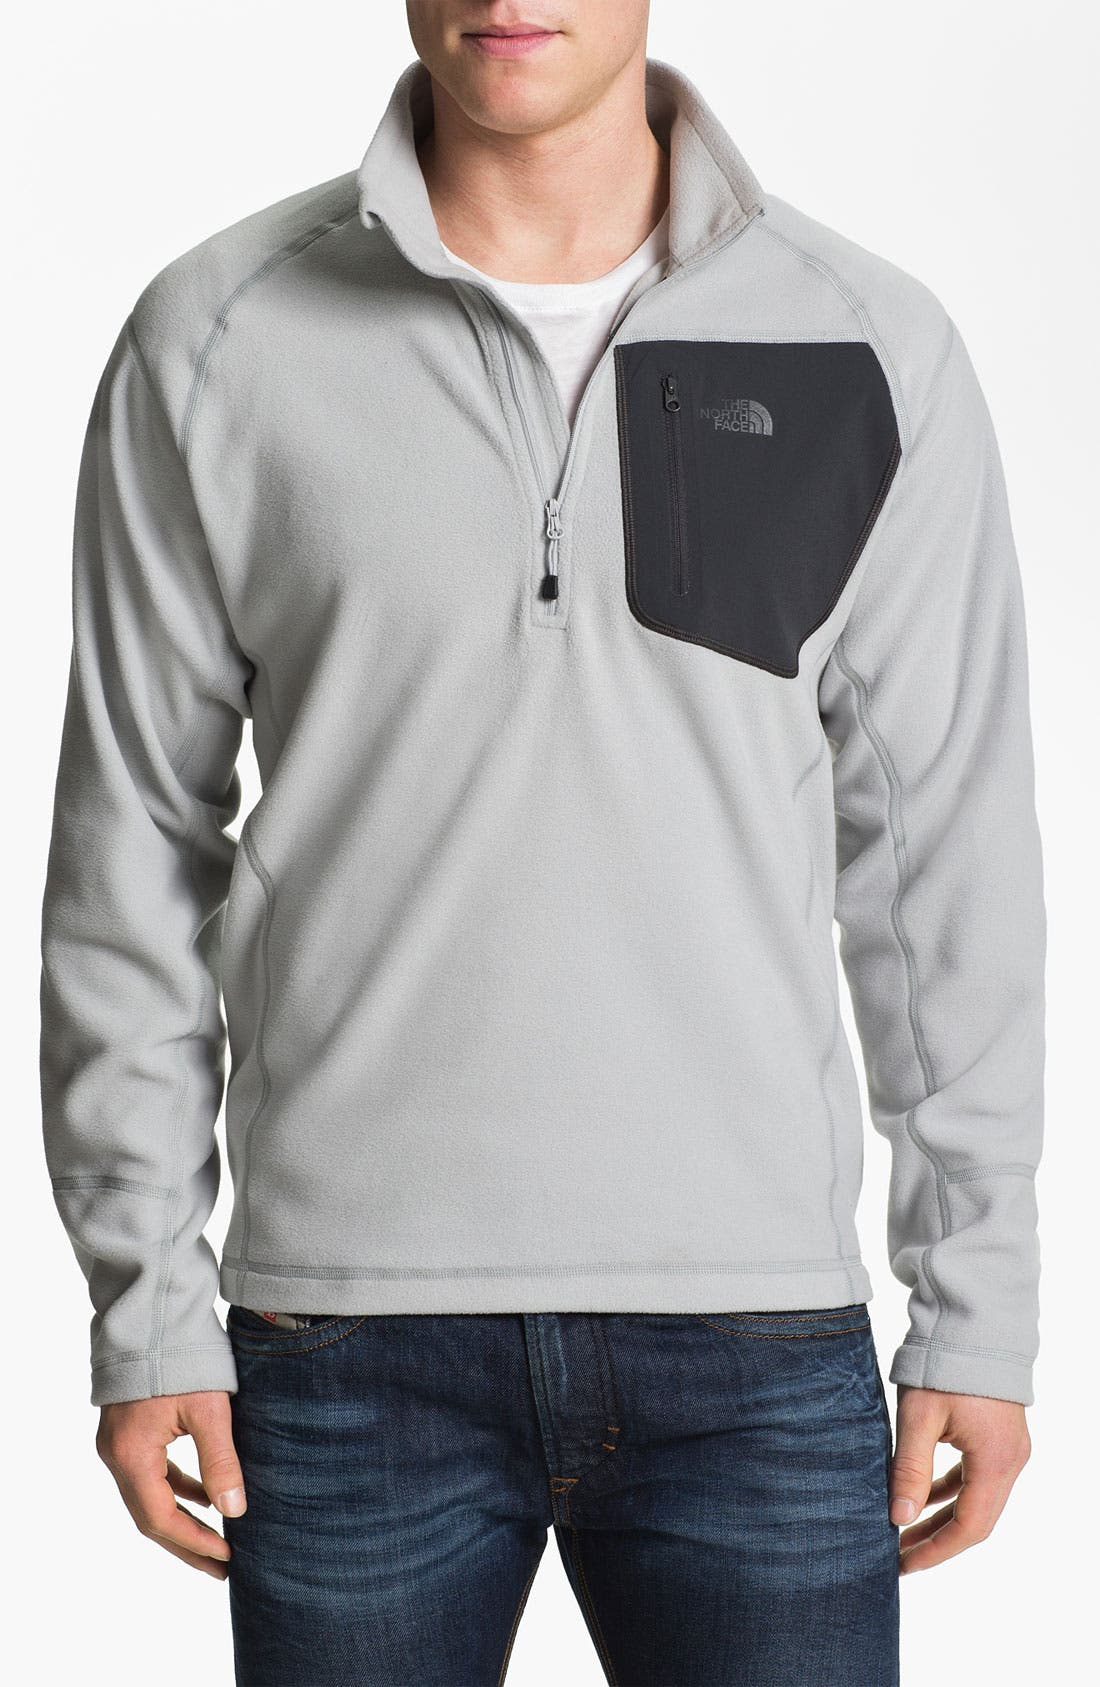 Alternate Image 1 Selected - The North Face 'TKA 100 Trinity Alps' Fleece Quarter Zip Pullover